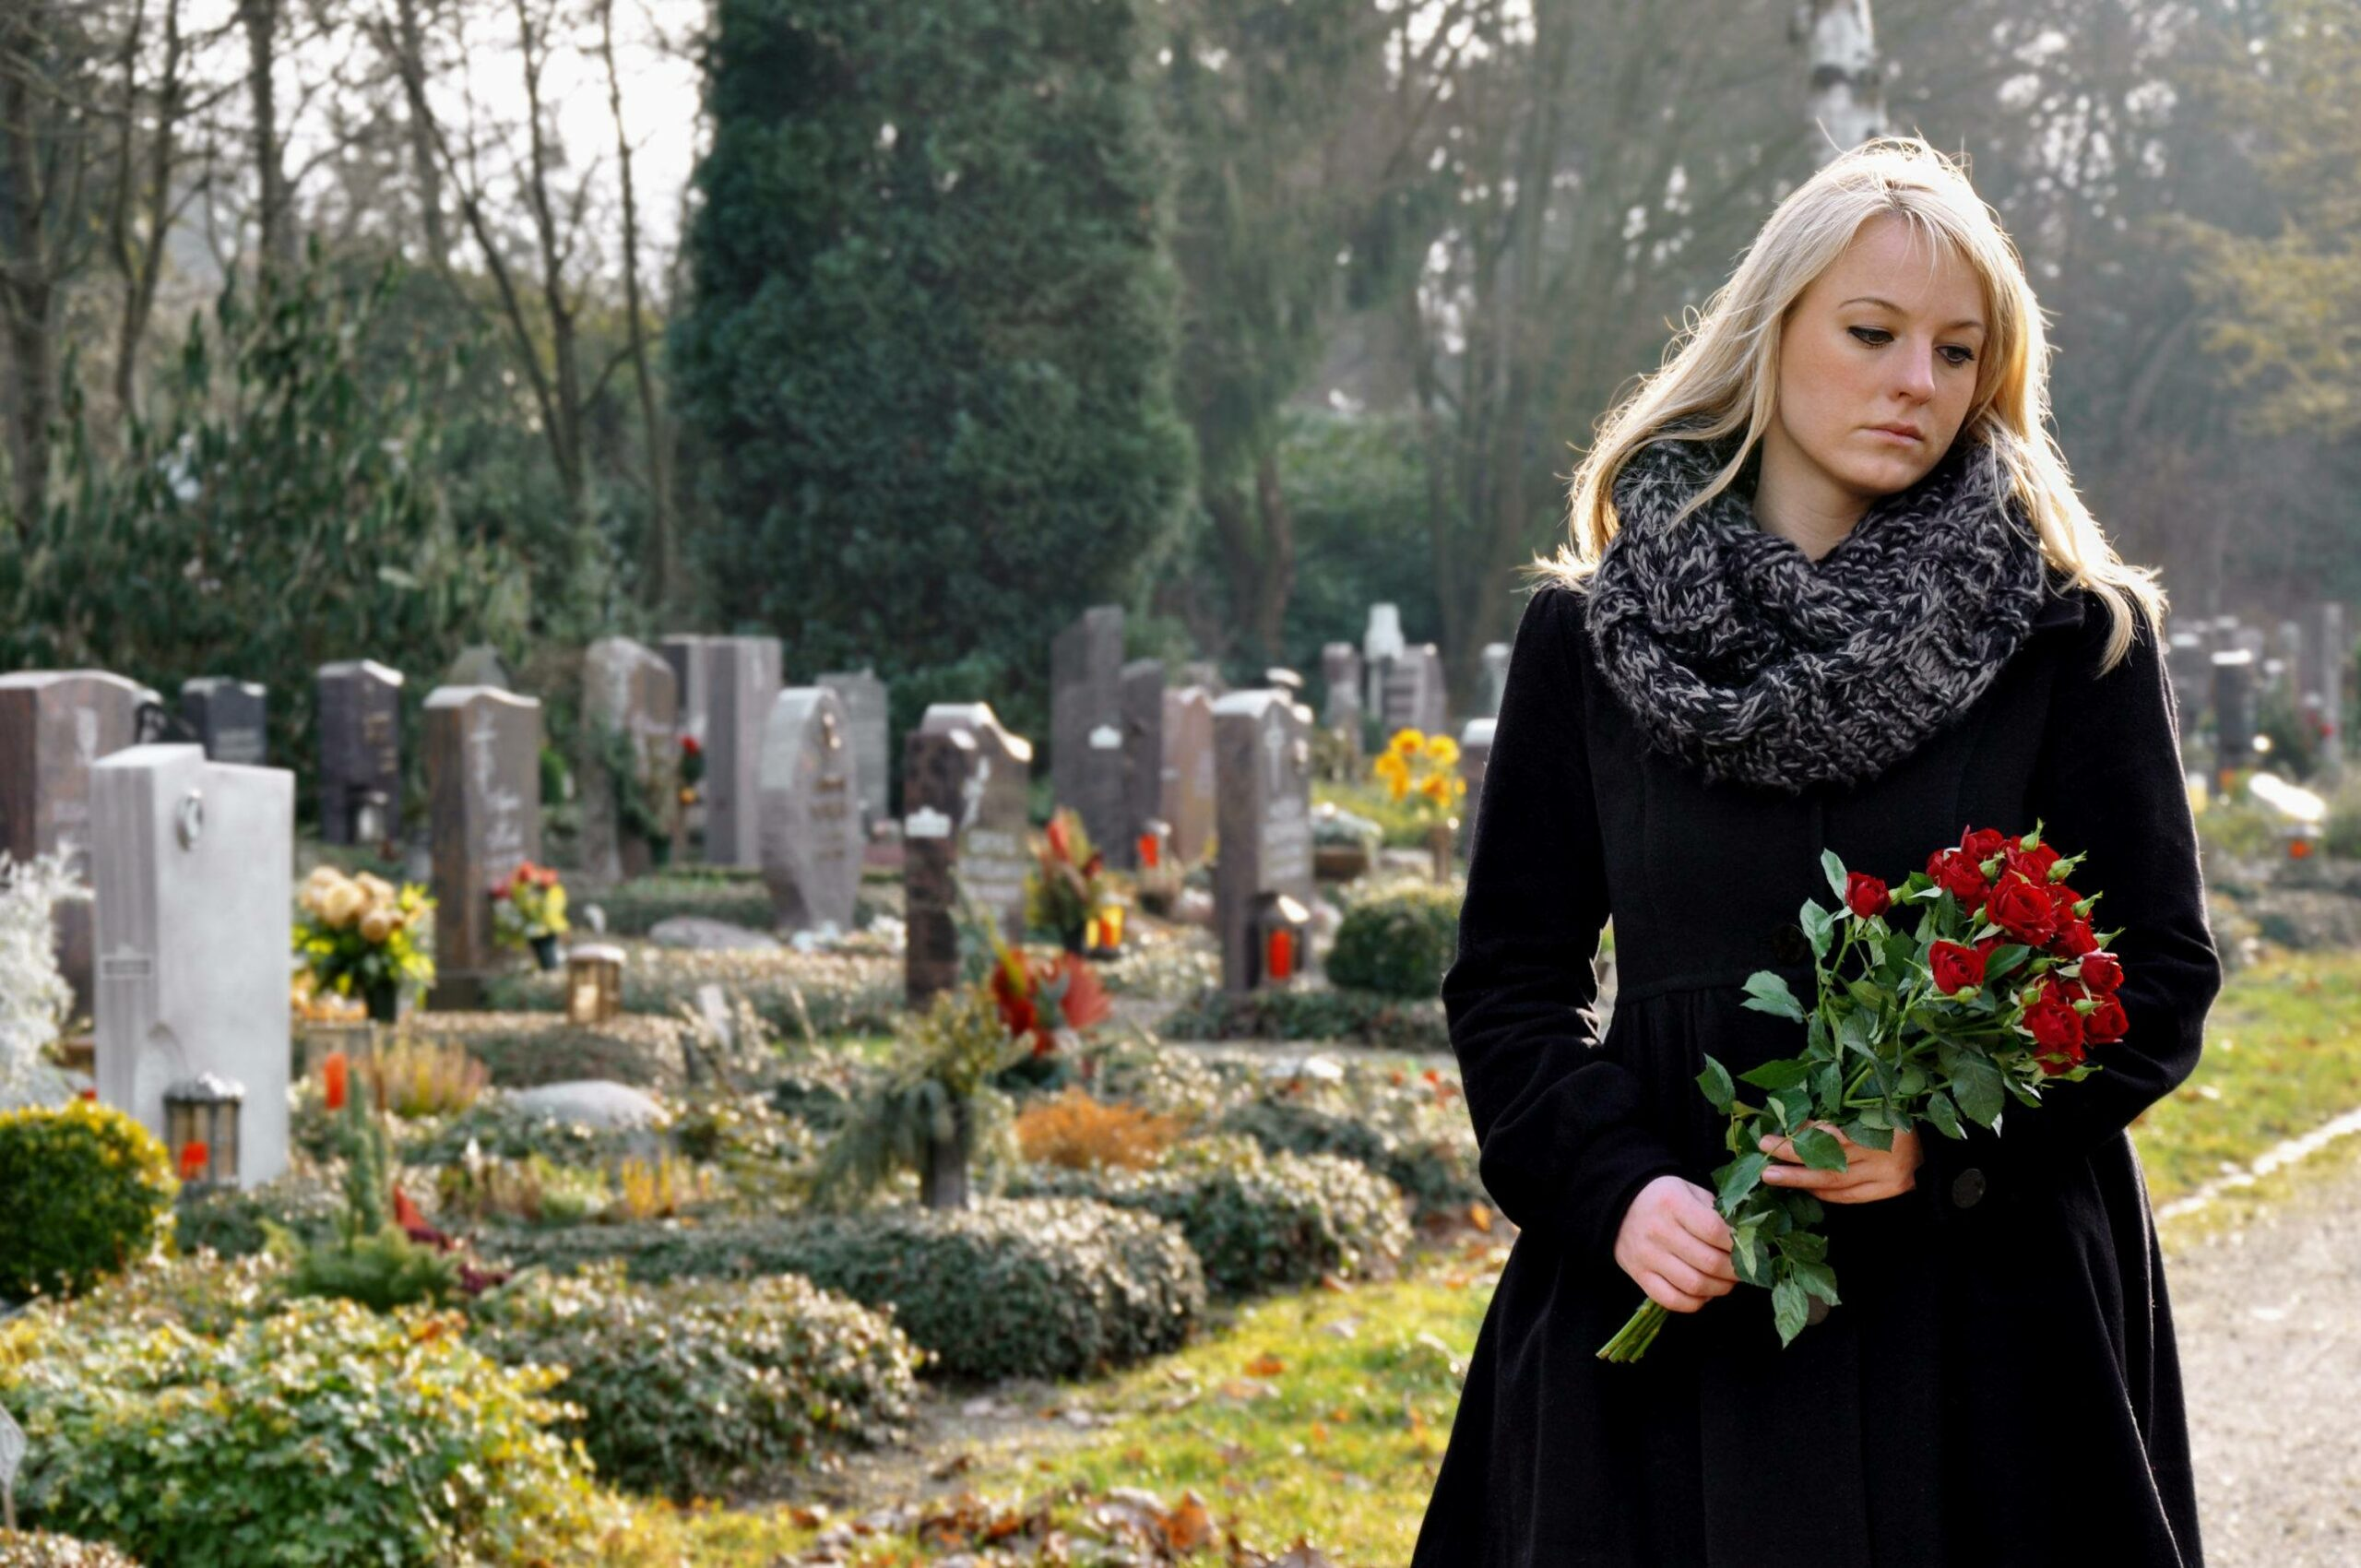 What Type of Burial Insurance Policy is Best for Seniors Above 80